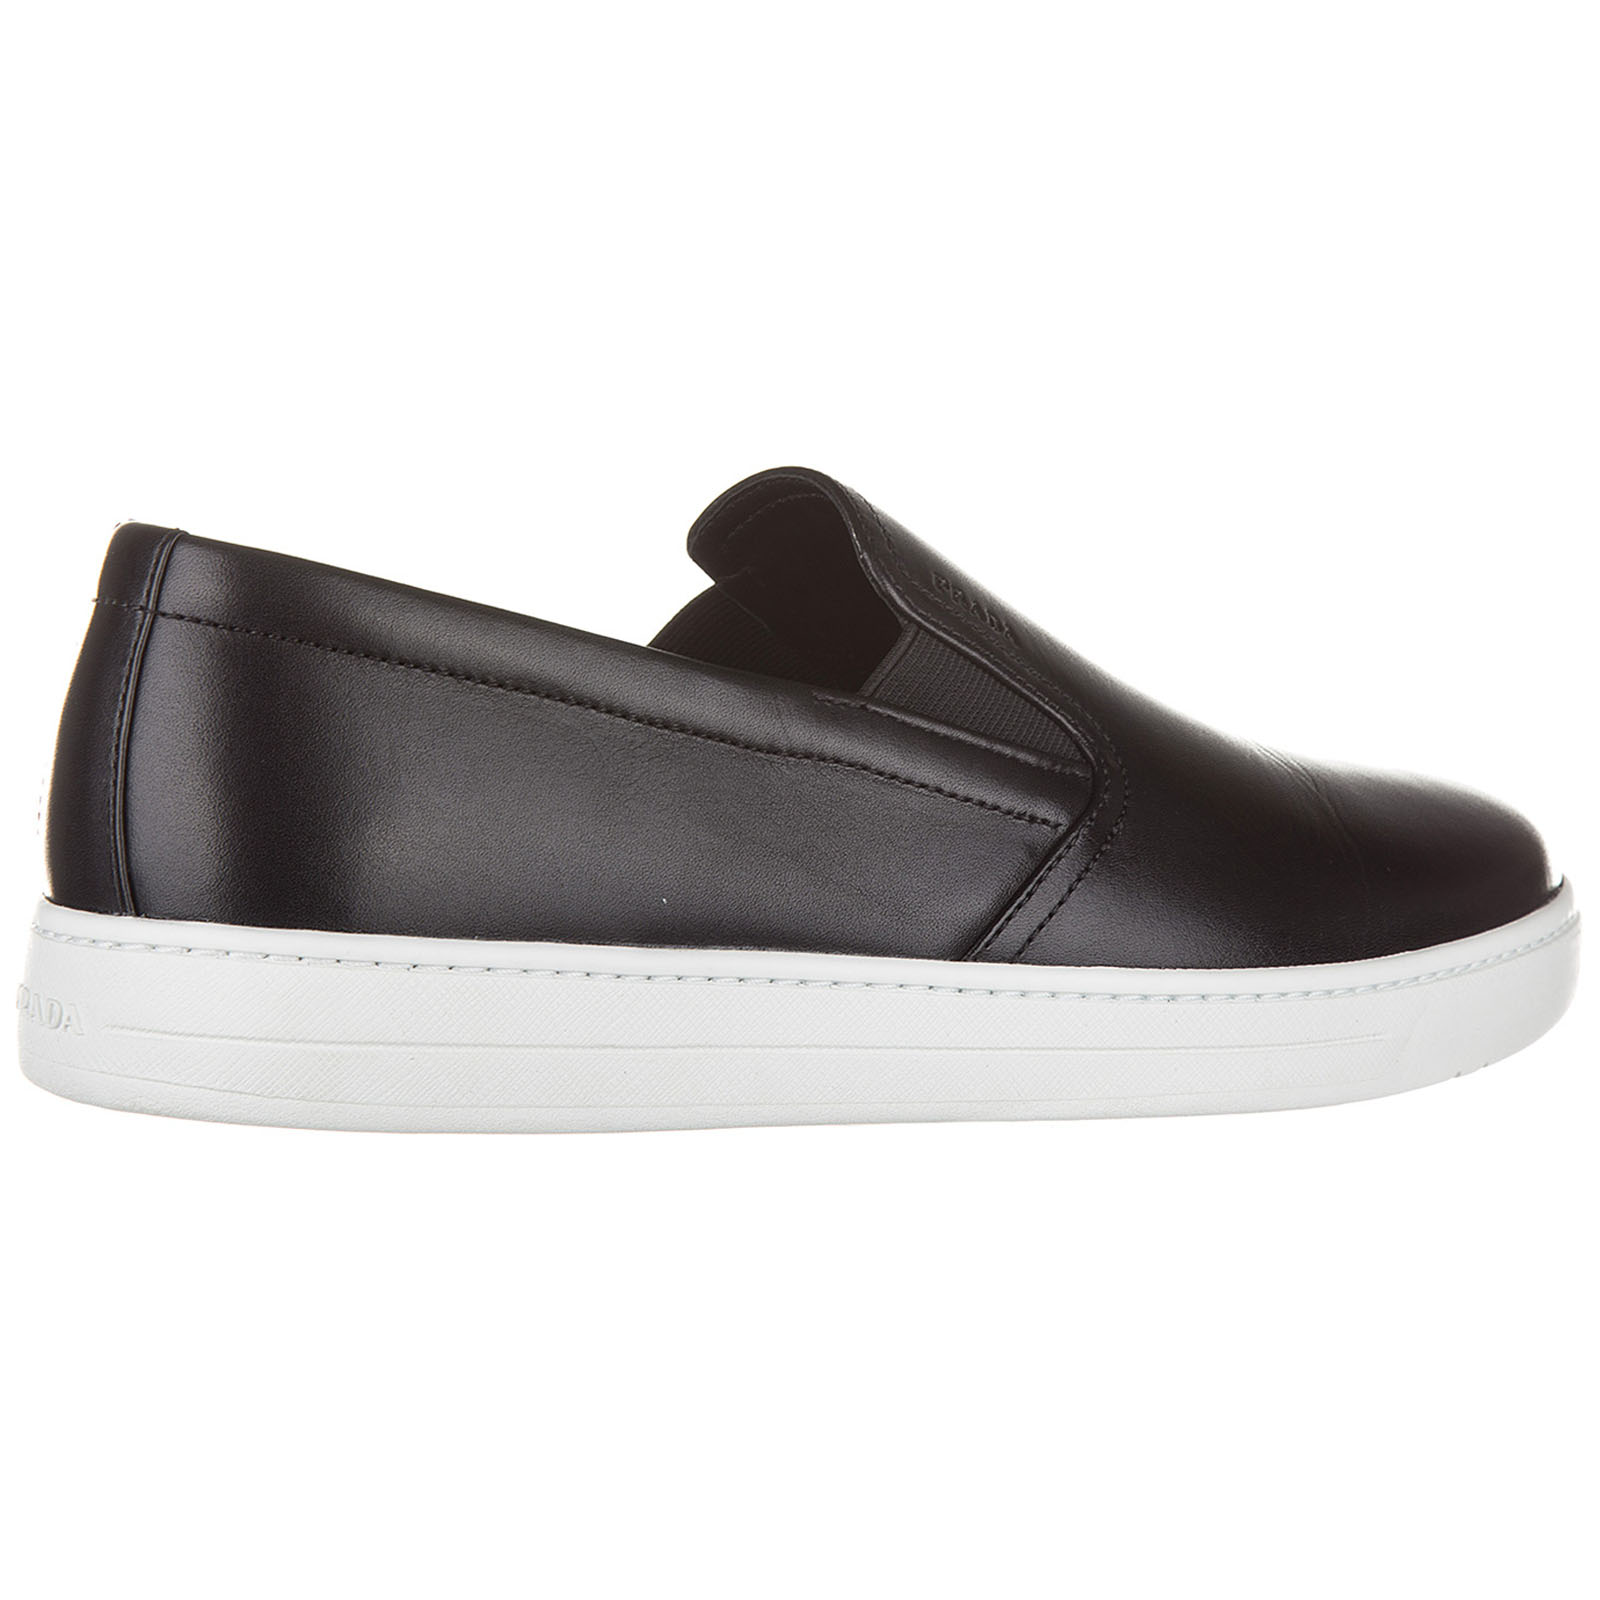 Slip on uomo in pelle sneakers  vitello plume